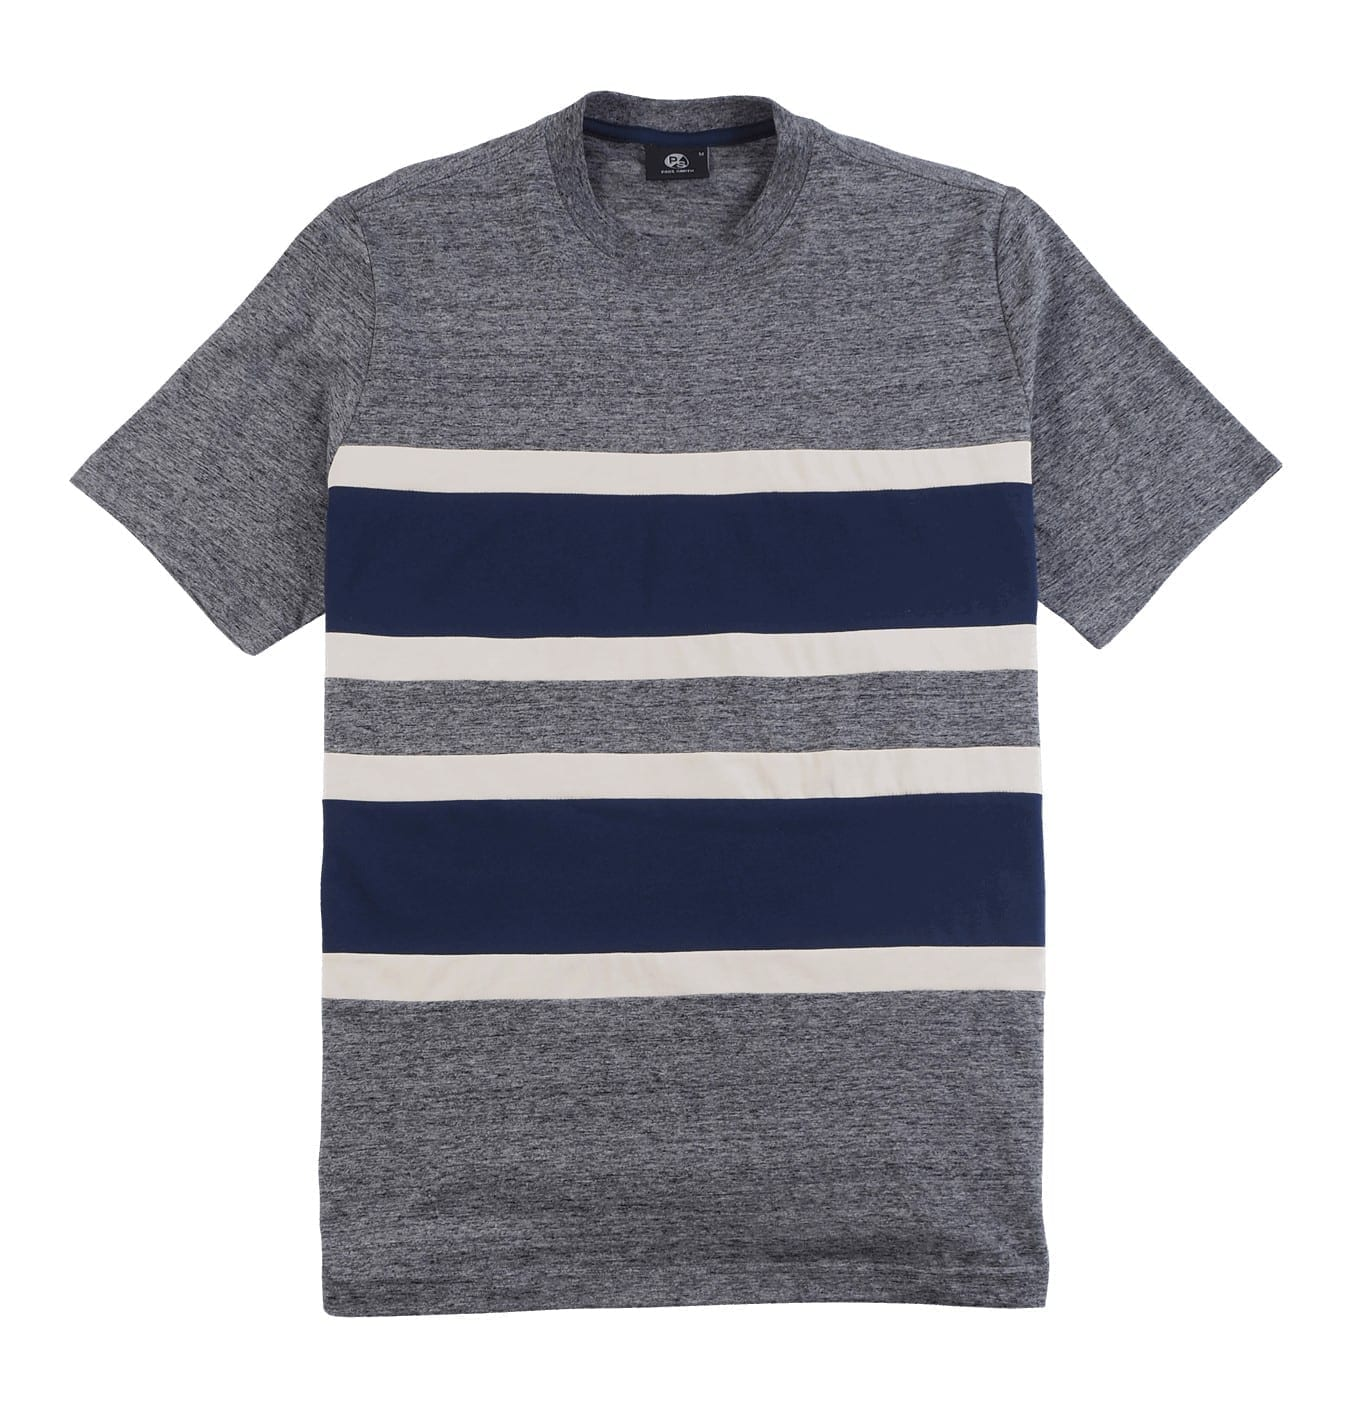 Image of Ash Grey T-shirt with Fabric Stribes